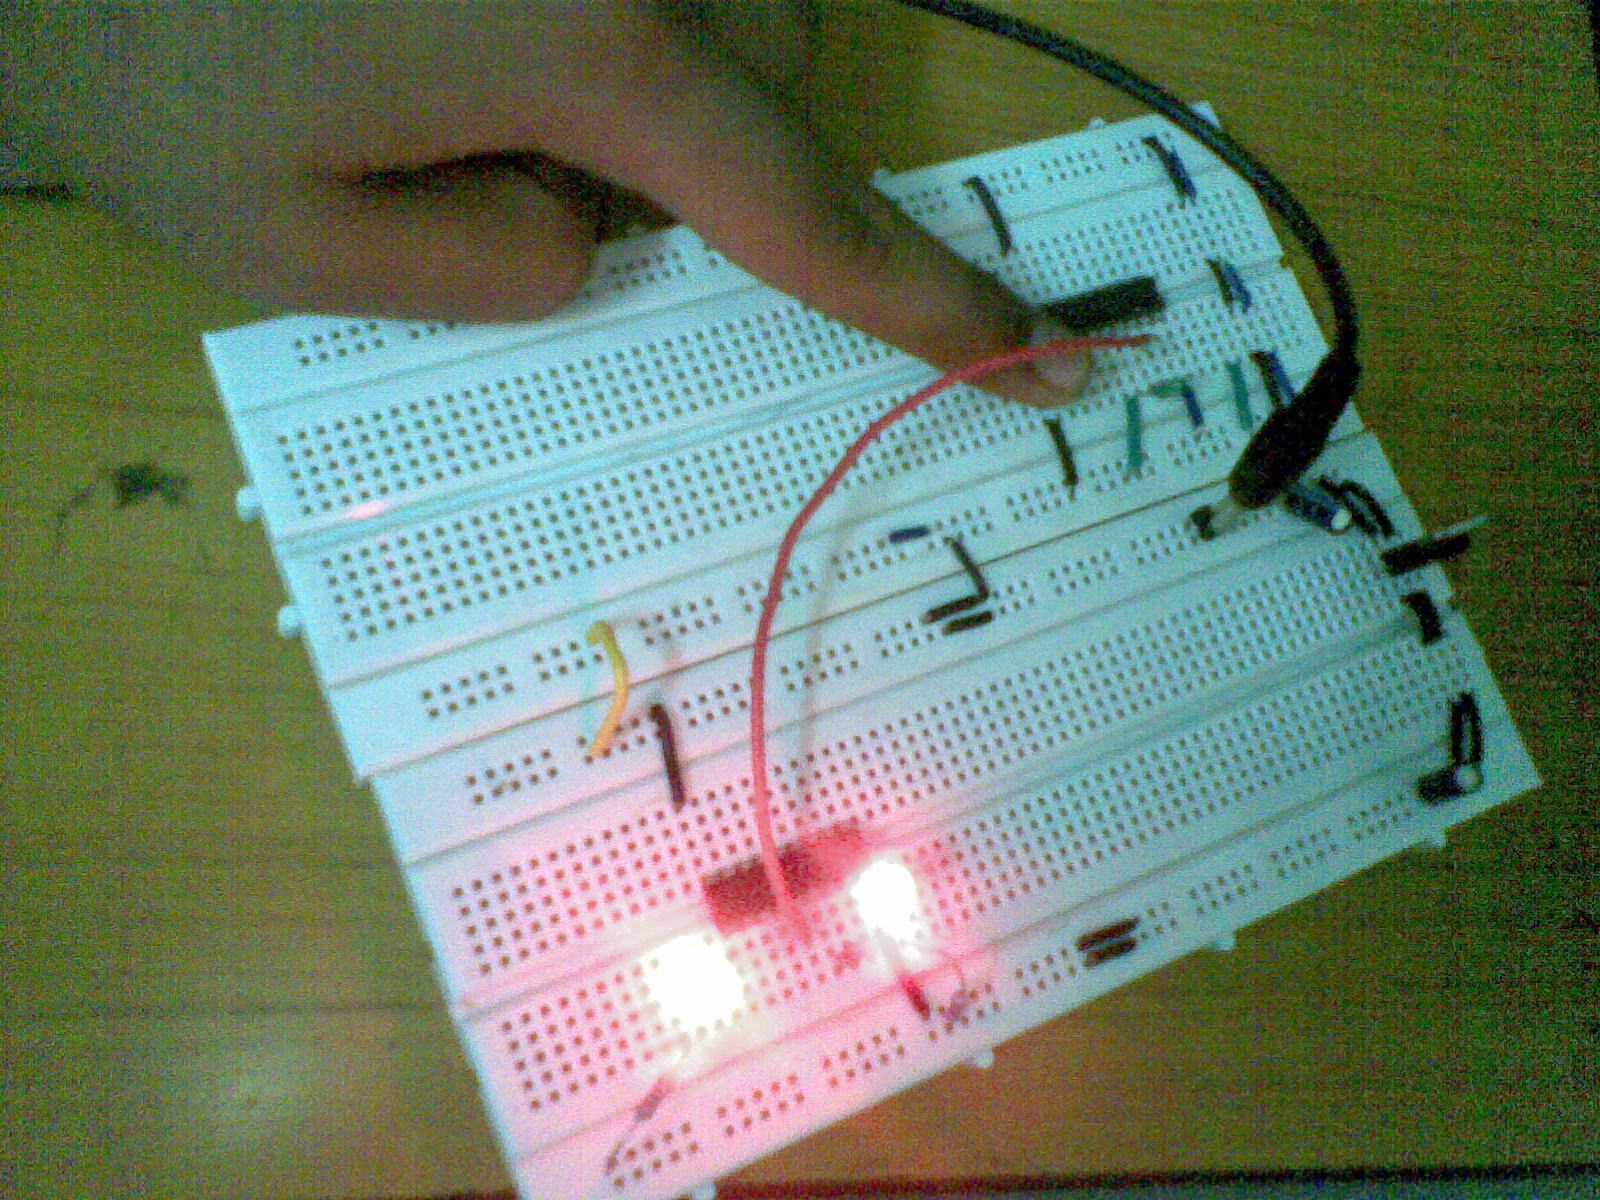 Introduction To Encoding And Decoding Making A Simple Encoder Decoder Logic Circuit 04072012